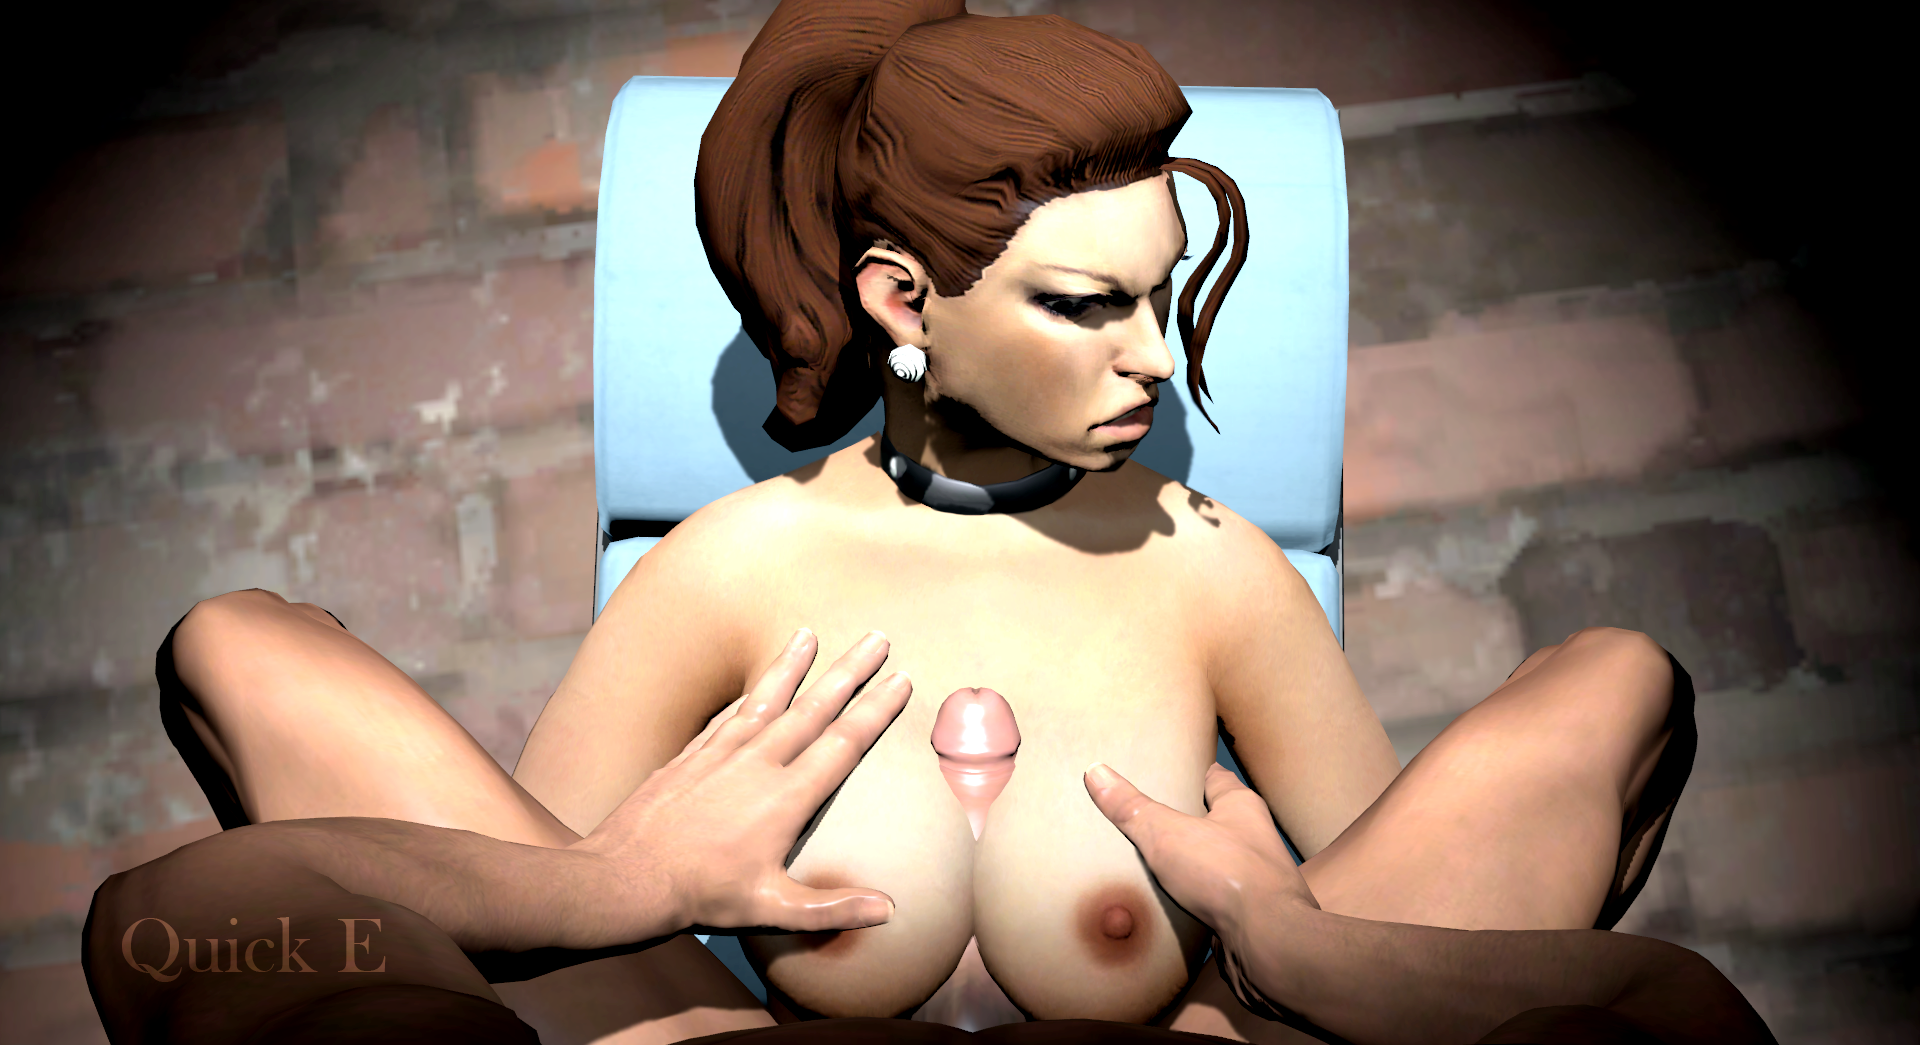 Saints row shaundi sex scene nude comic